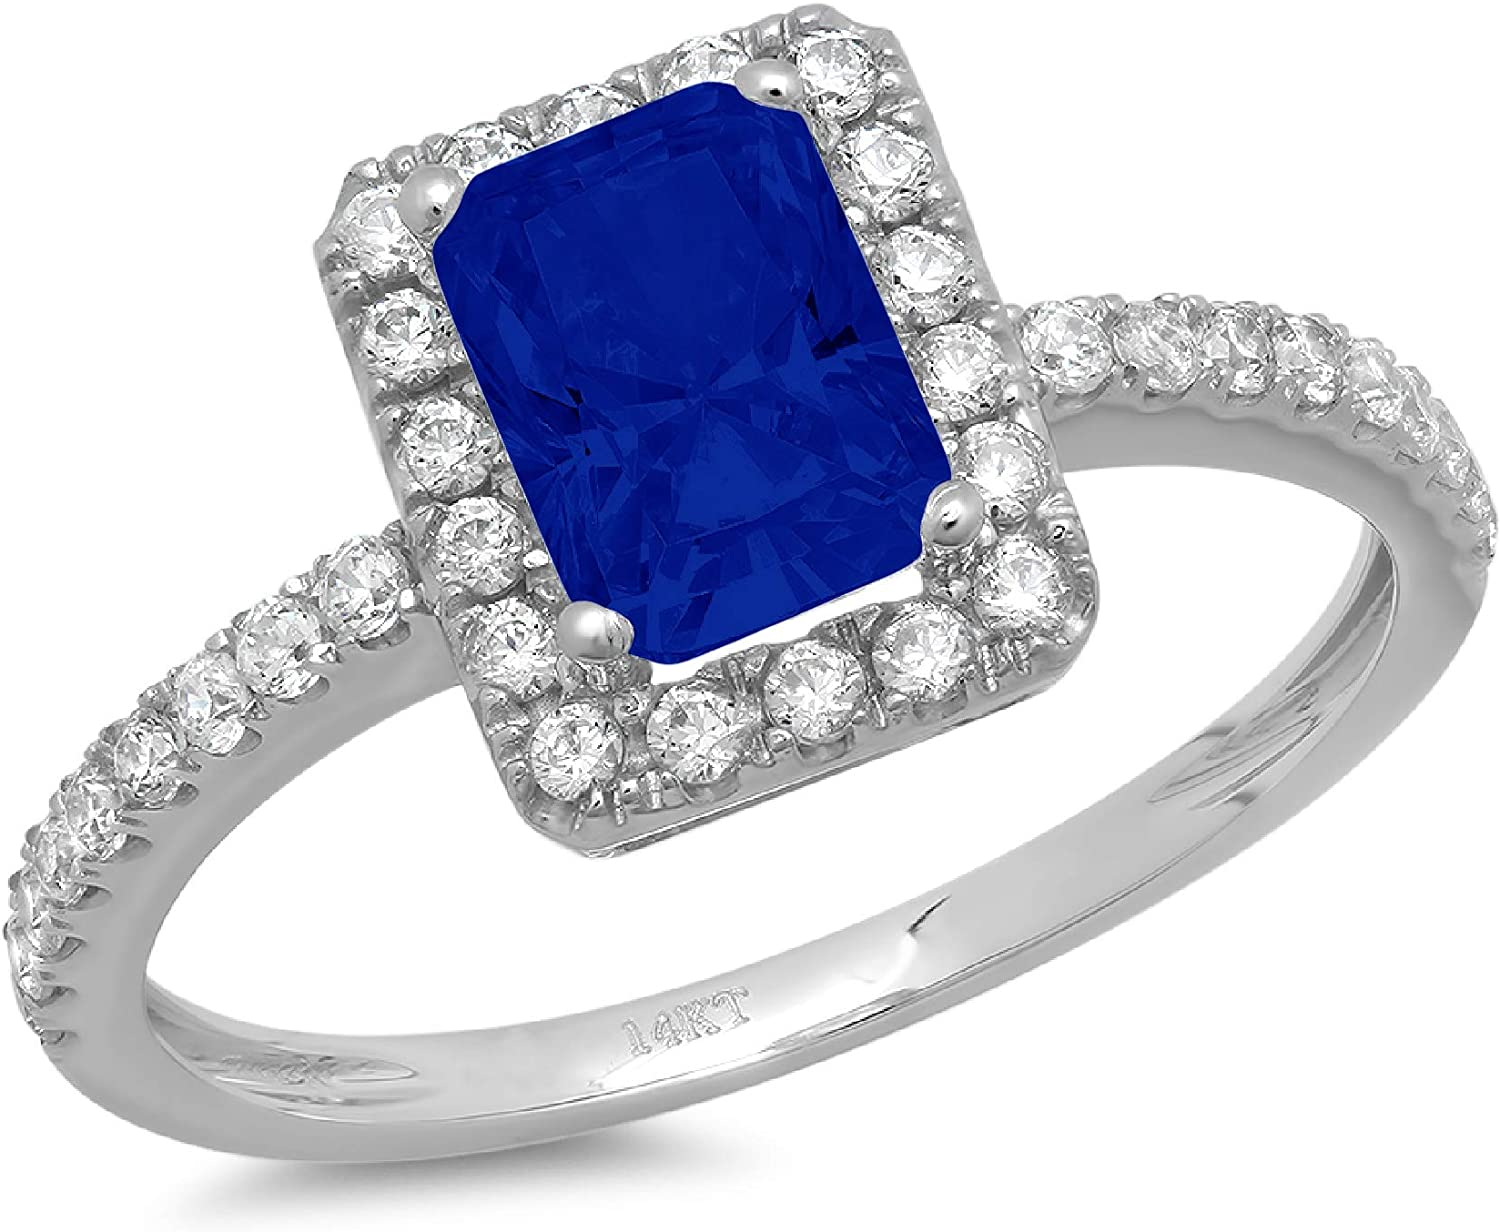 1.98ct Brilliant Emerald Cut Solitaire with Accent Halo Flawless Genuine Simulated Blue Sapphire Ideal Engagement Promise Anniversary Bridal Wedding Designer Ring 14k White Gold